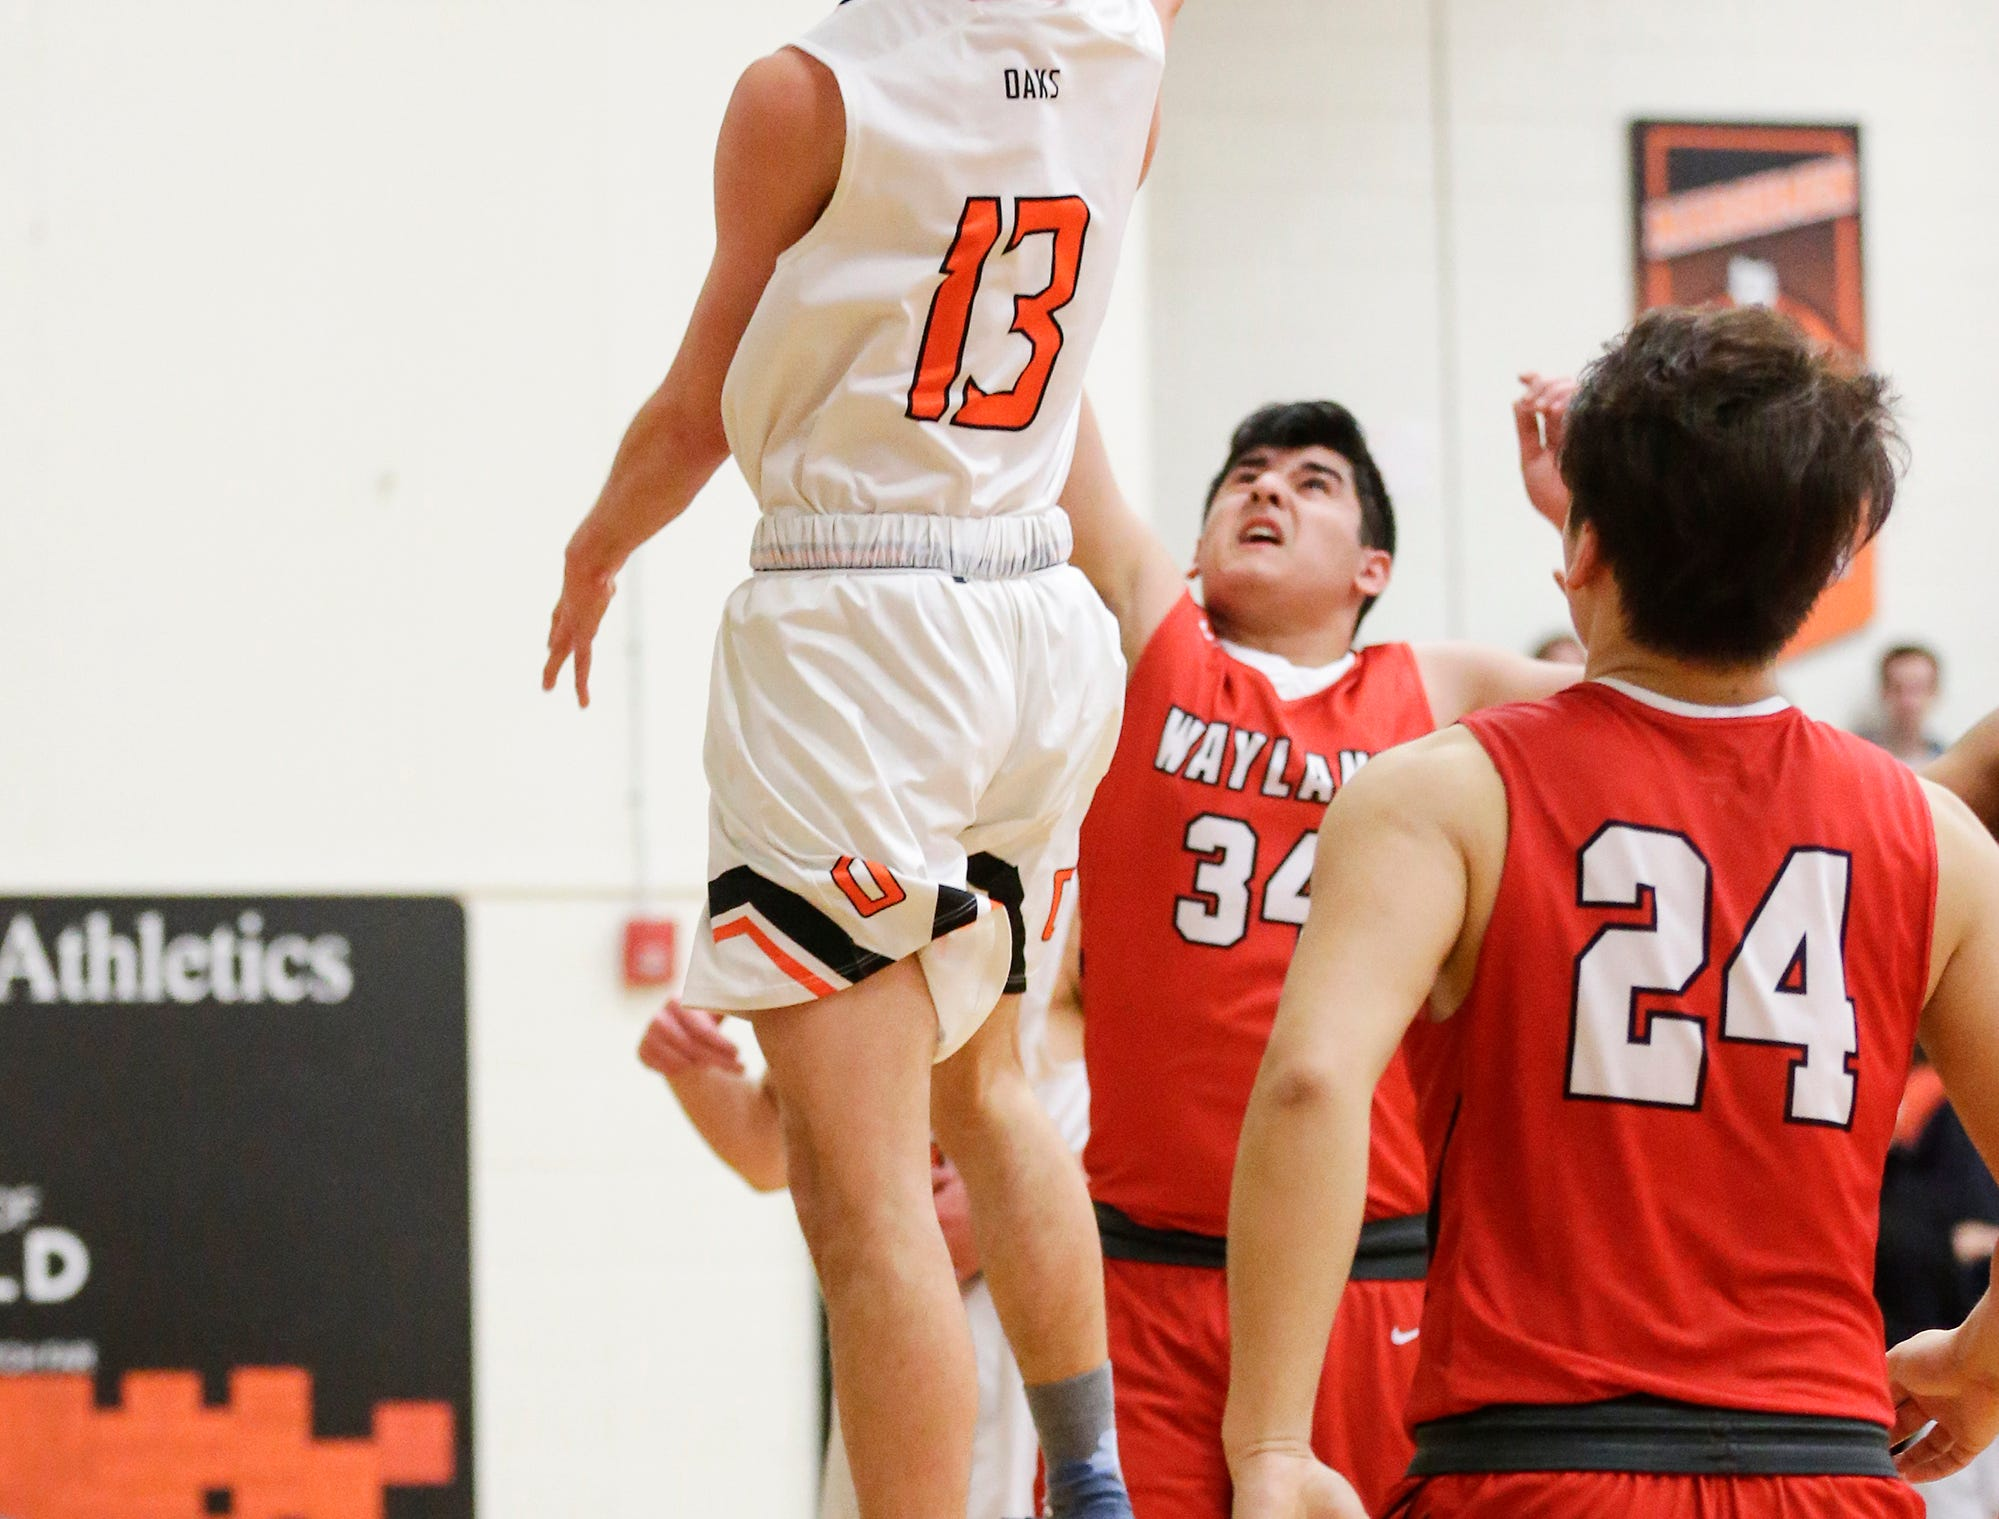 Oakfield High School boys basketball's Tyler Streeter attempts a basket against Wayland Academy January 11, 2019 during their game in Oakfield. Oakfield won the game 56-48. Doug Raflik/USA TODAY NETWORK-Wisconsin